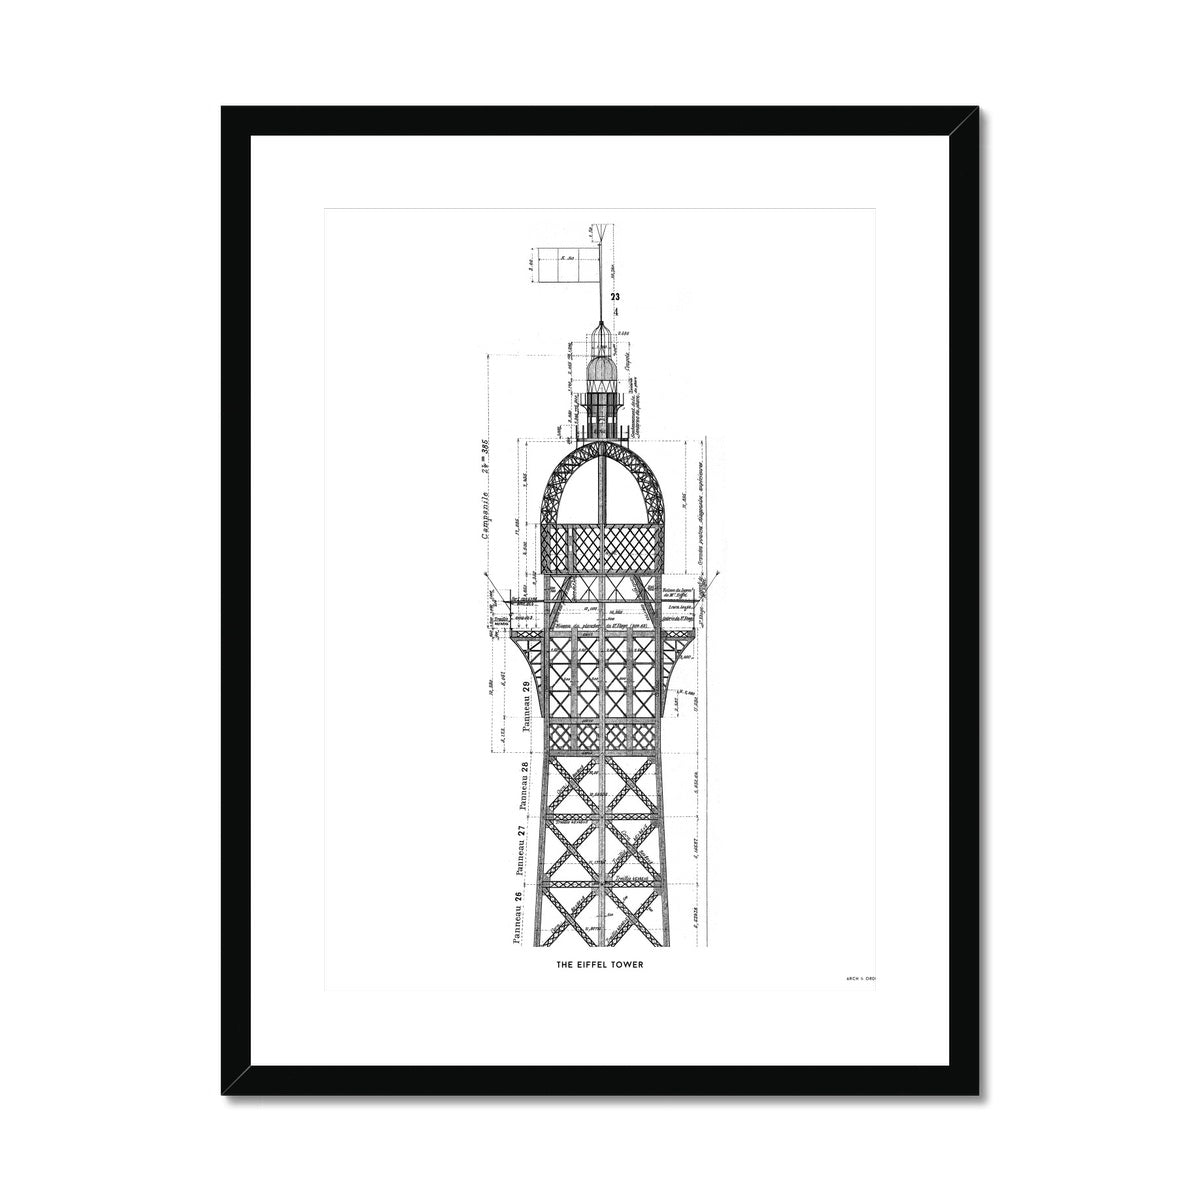 The Eiffel Tower - Top Cross Section - White -  Framed & Mounted Print